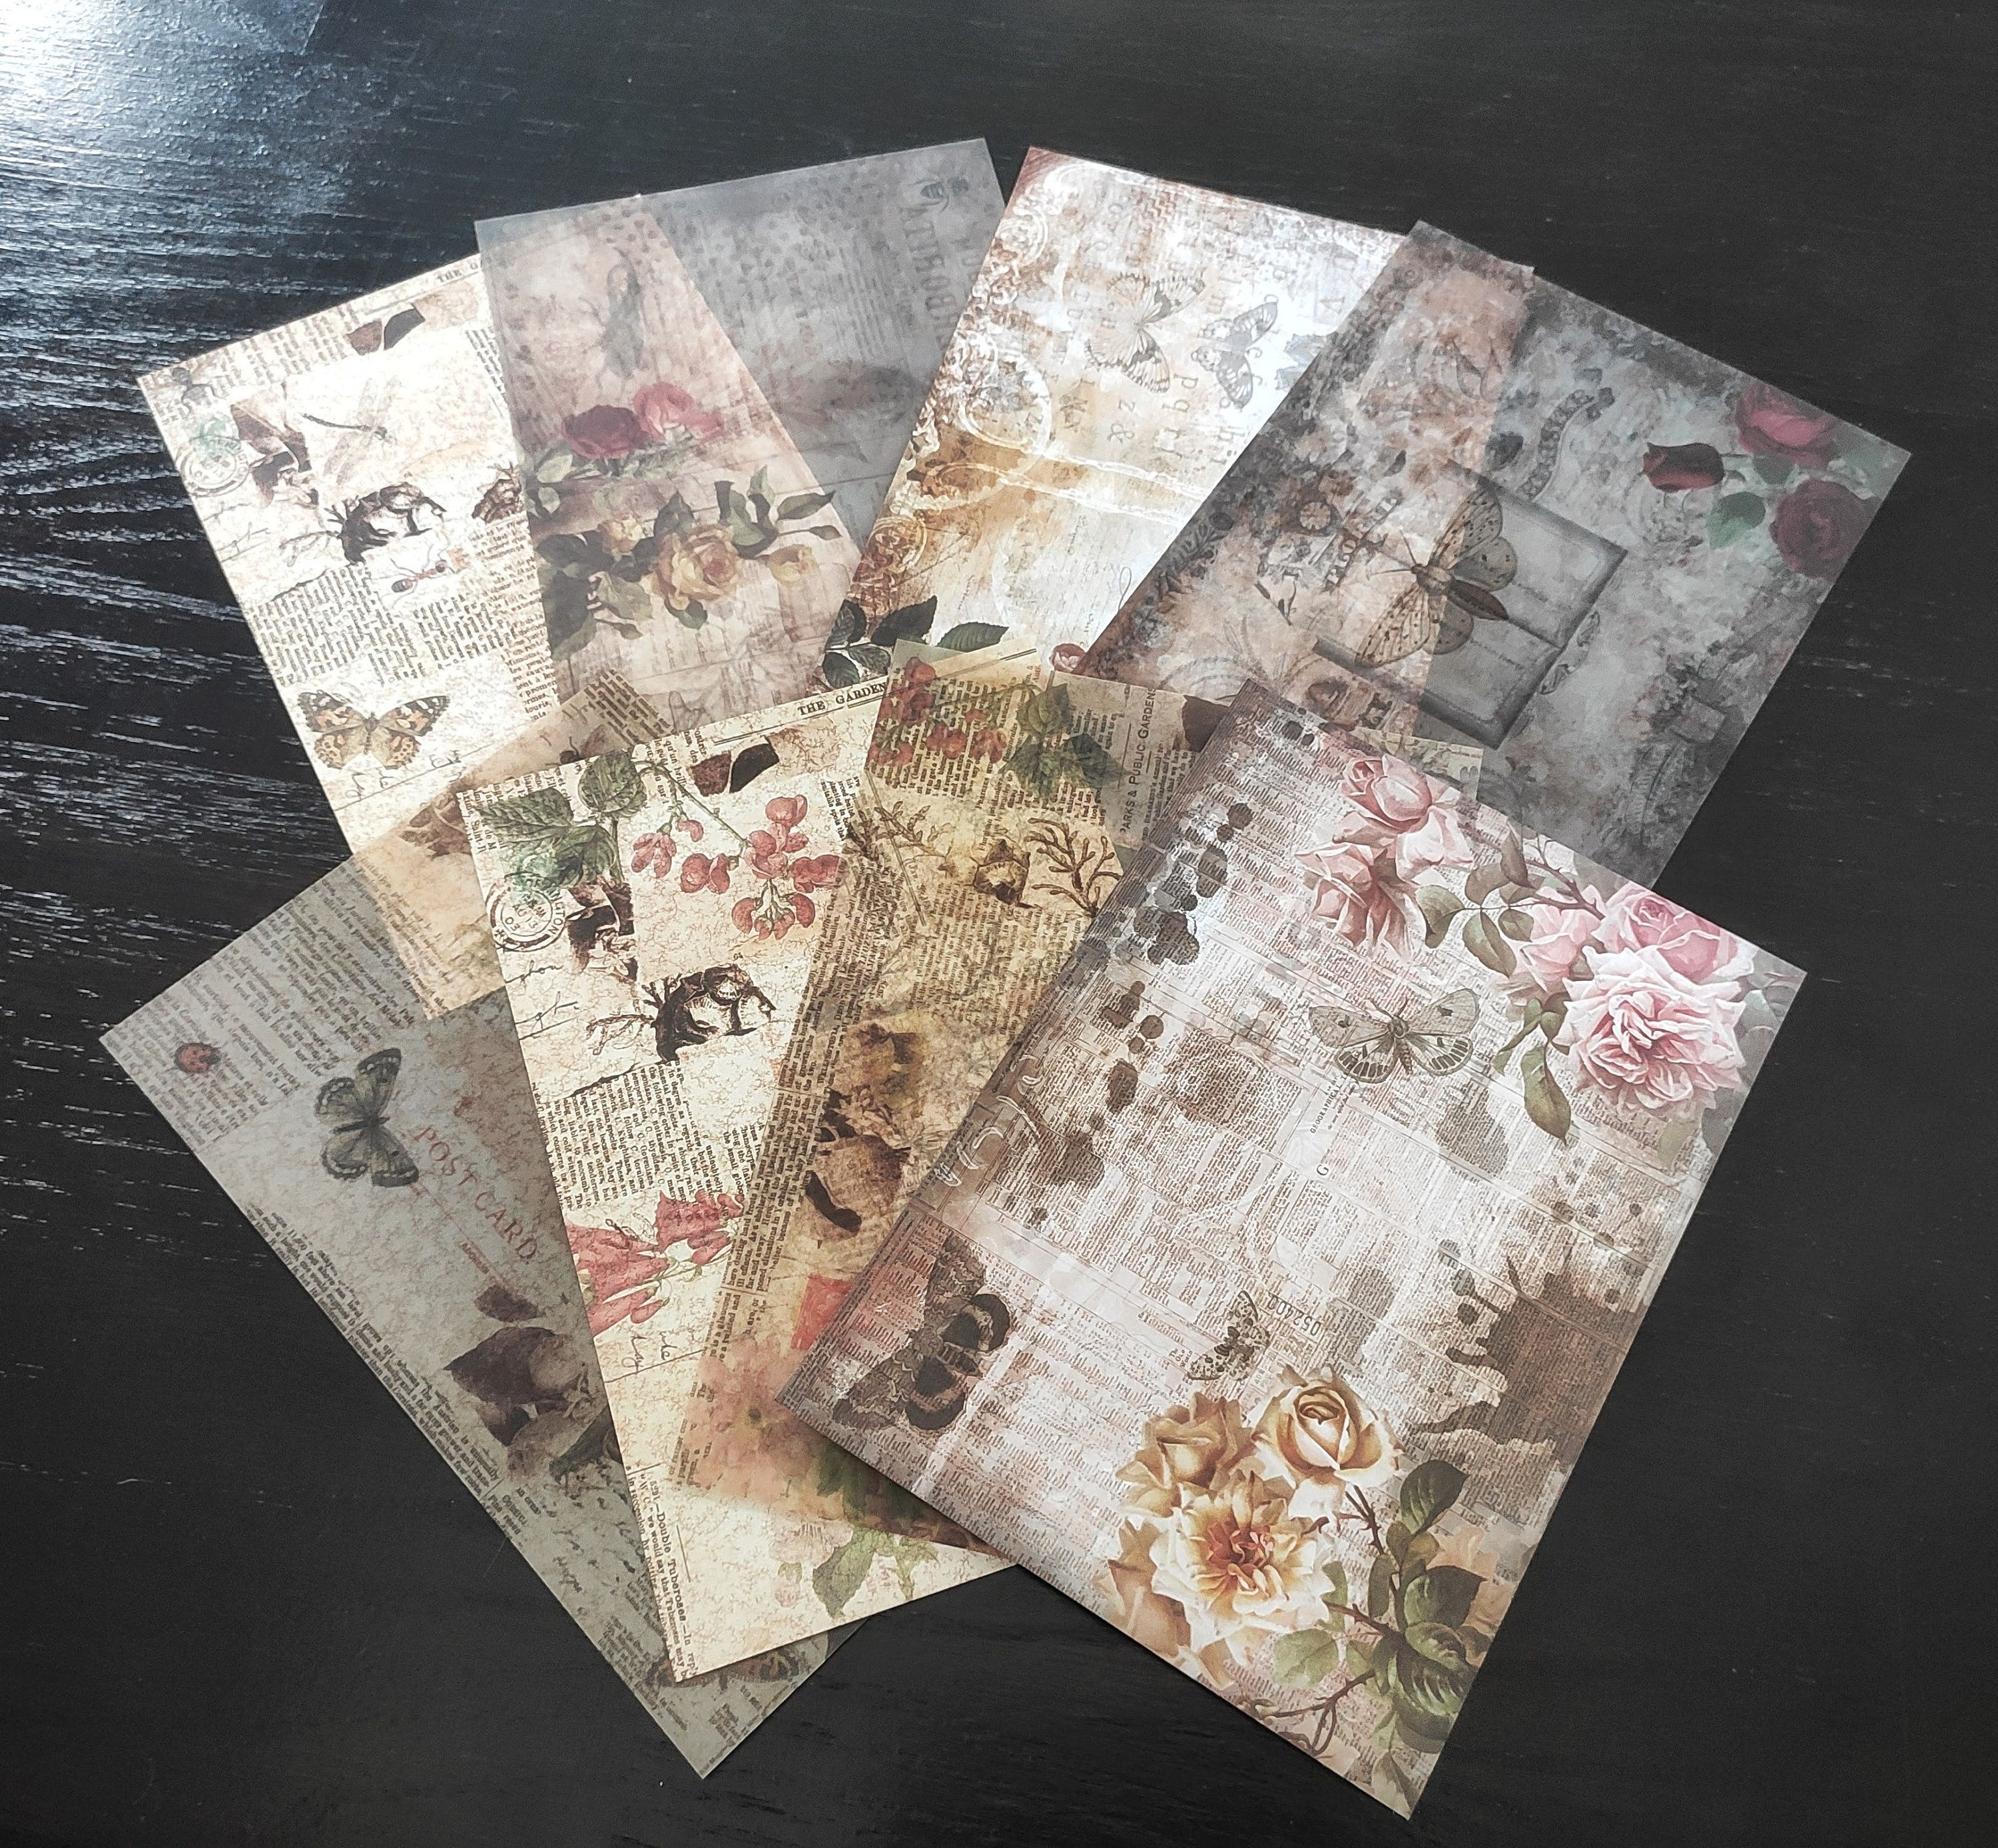 Paper Set Insect Butterflies Retro Flowers Vellum Vintage Etsy In 2020 Retro Flowers Mixed Media Art Journaling Vintage Journal